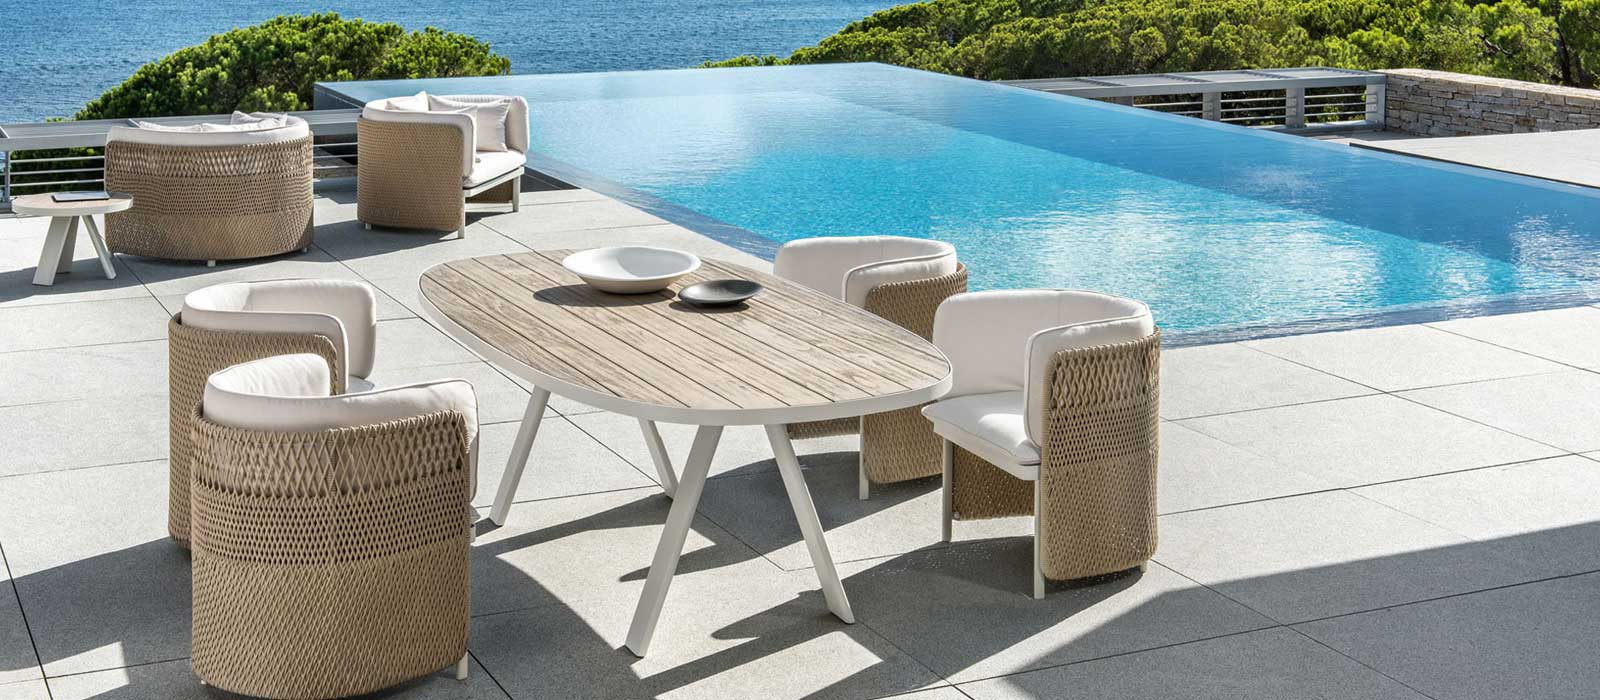 Poolside Furniture Manufacturers in Loni